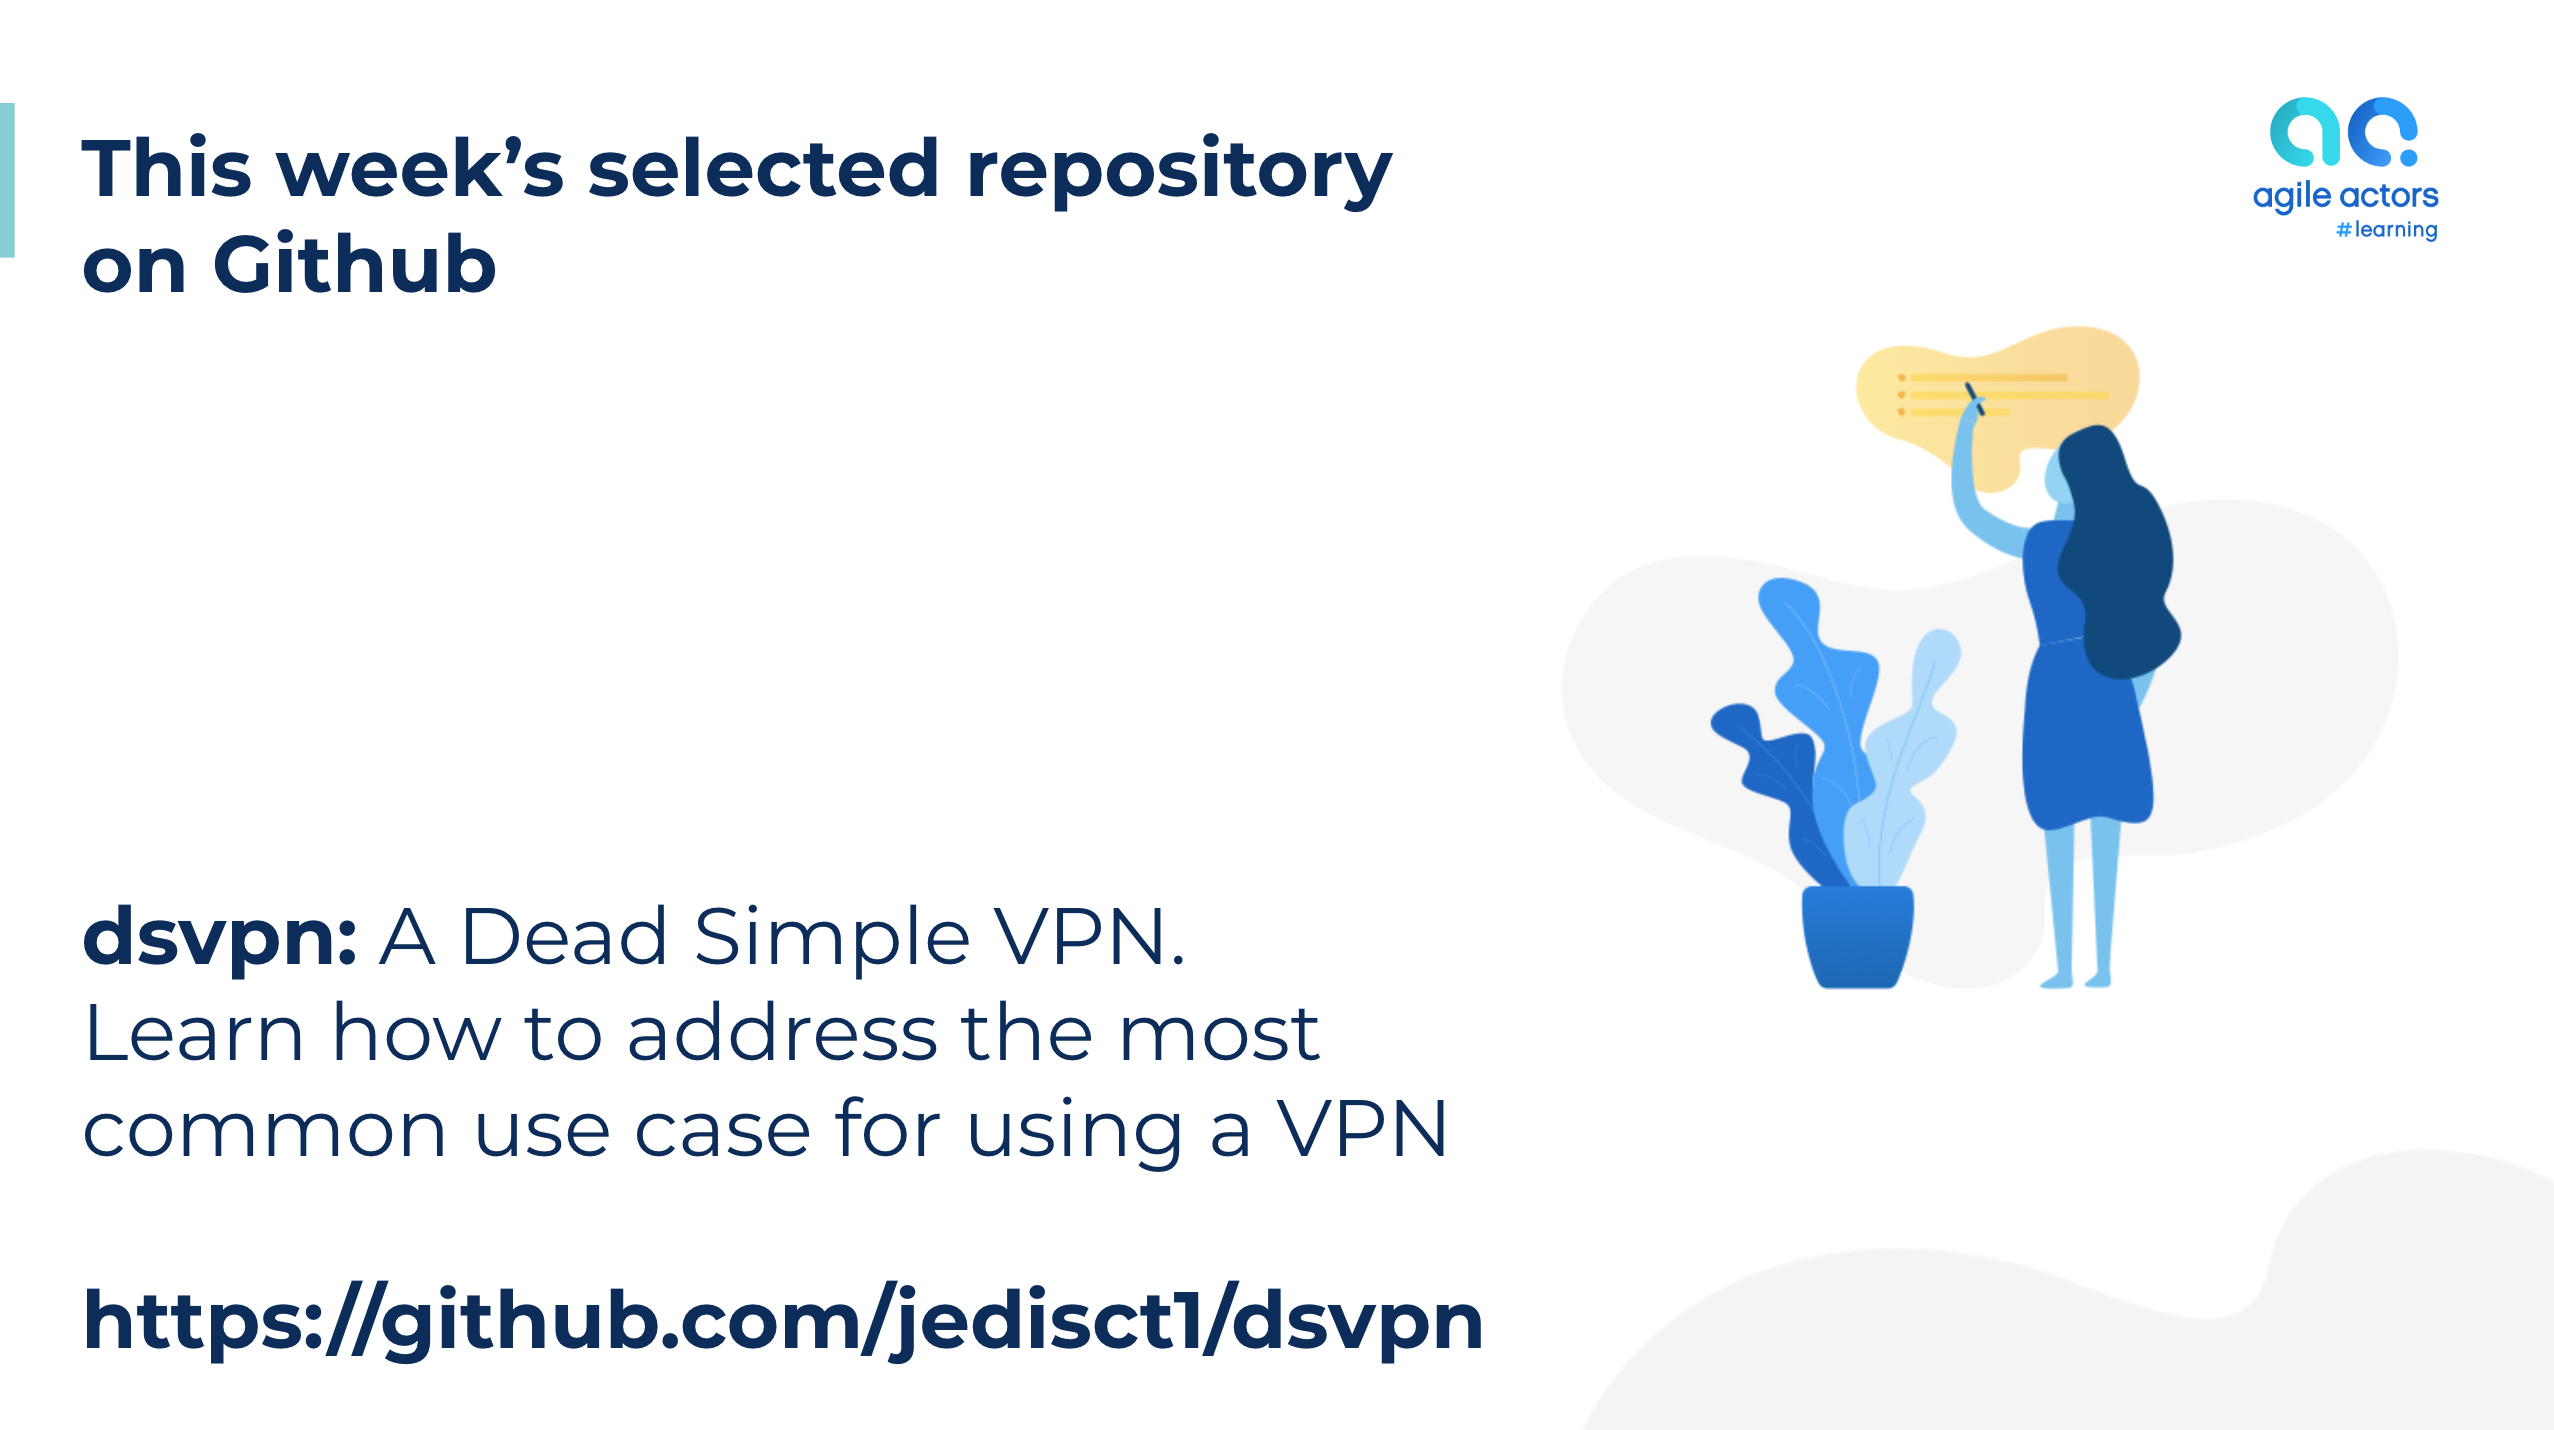 DSVPN is a Dead Simple VPN, designed to address the most